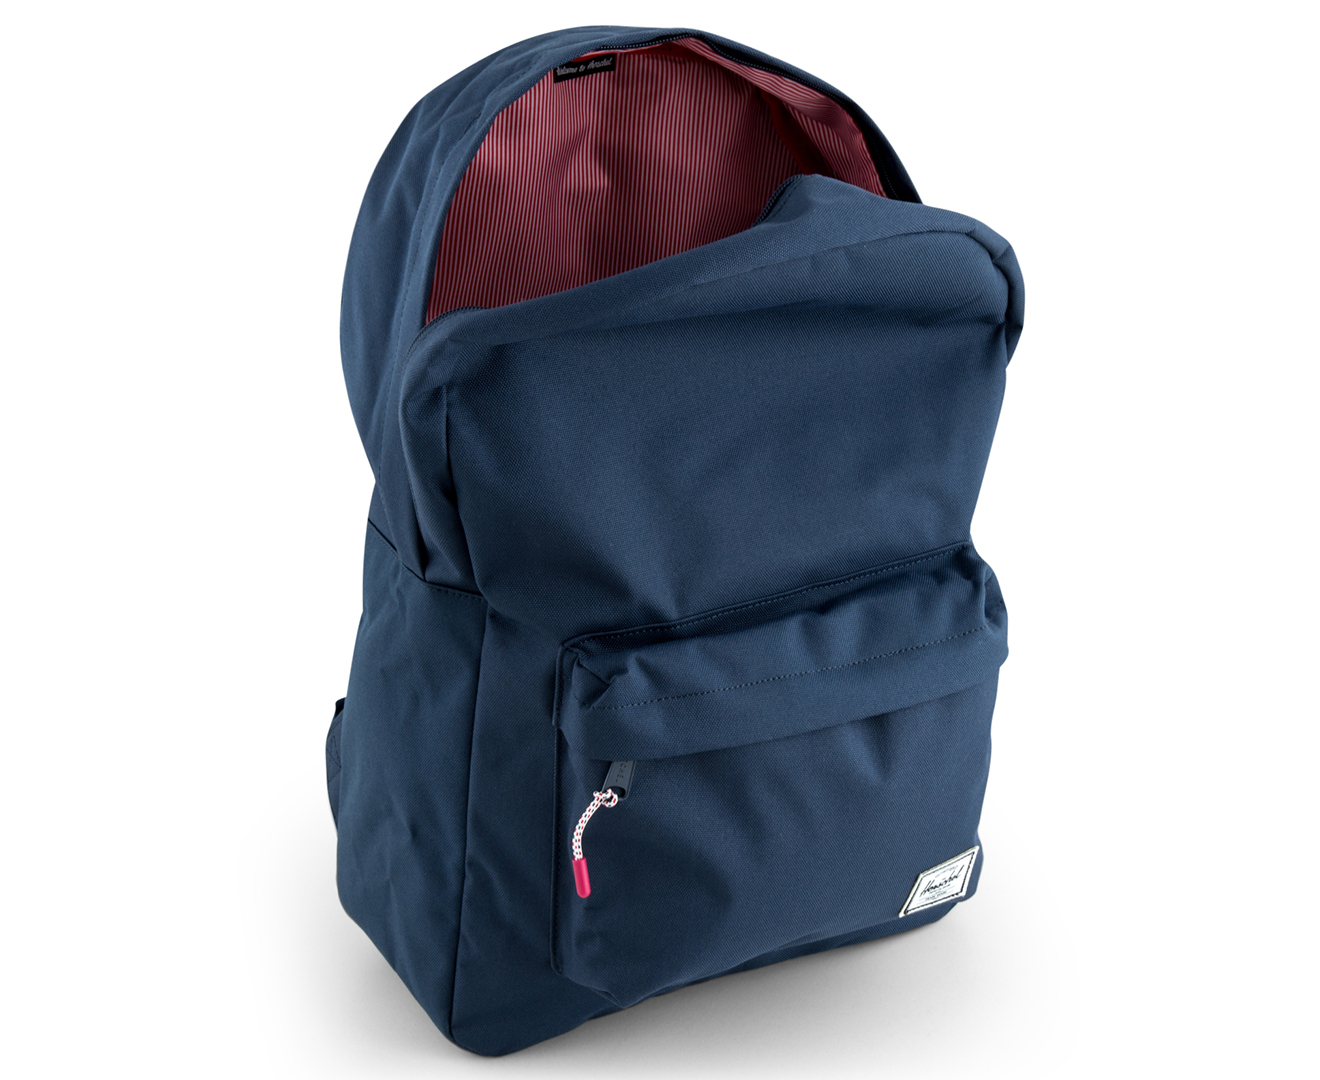 04a646c63dd Herschel Supply Co. 22L Classic Backpack - Navy